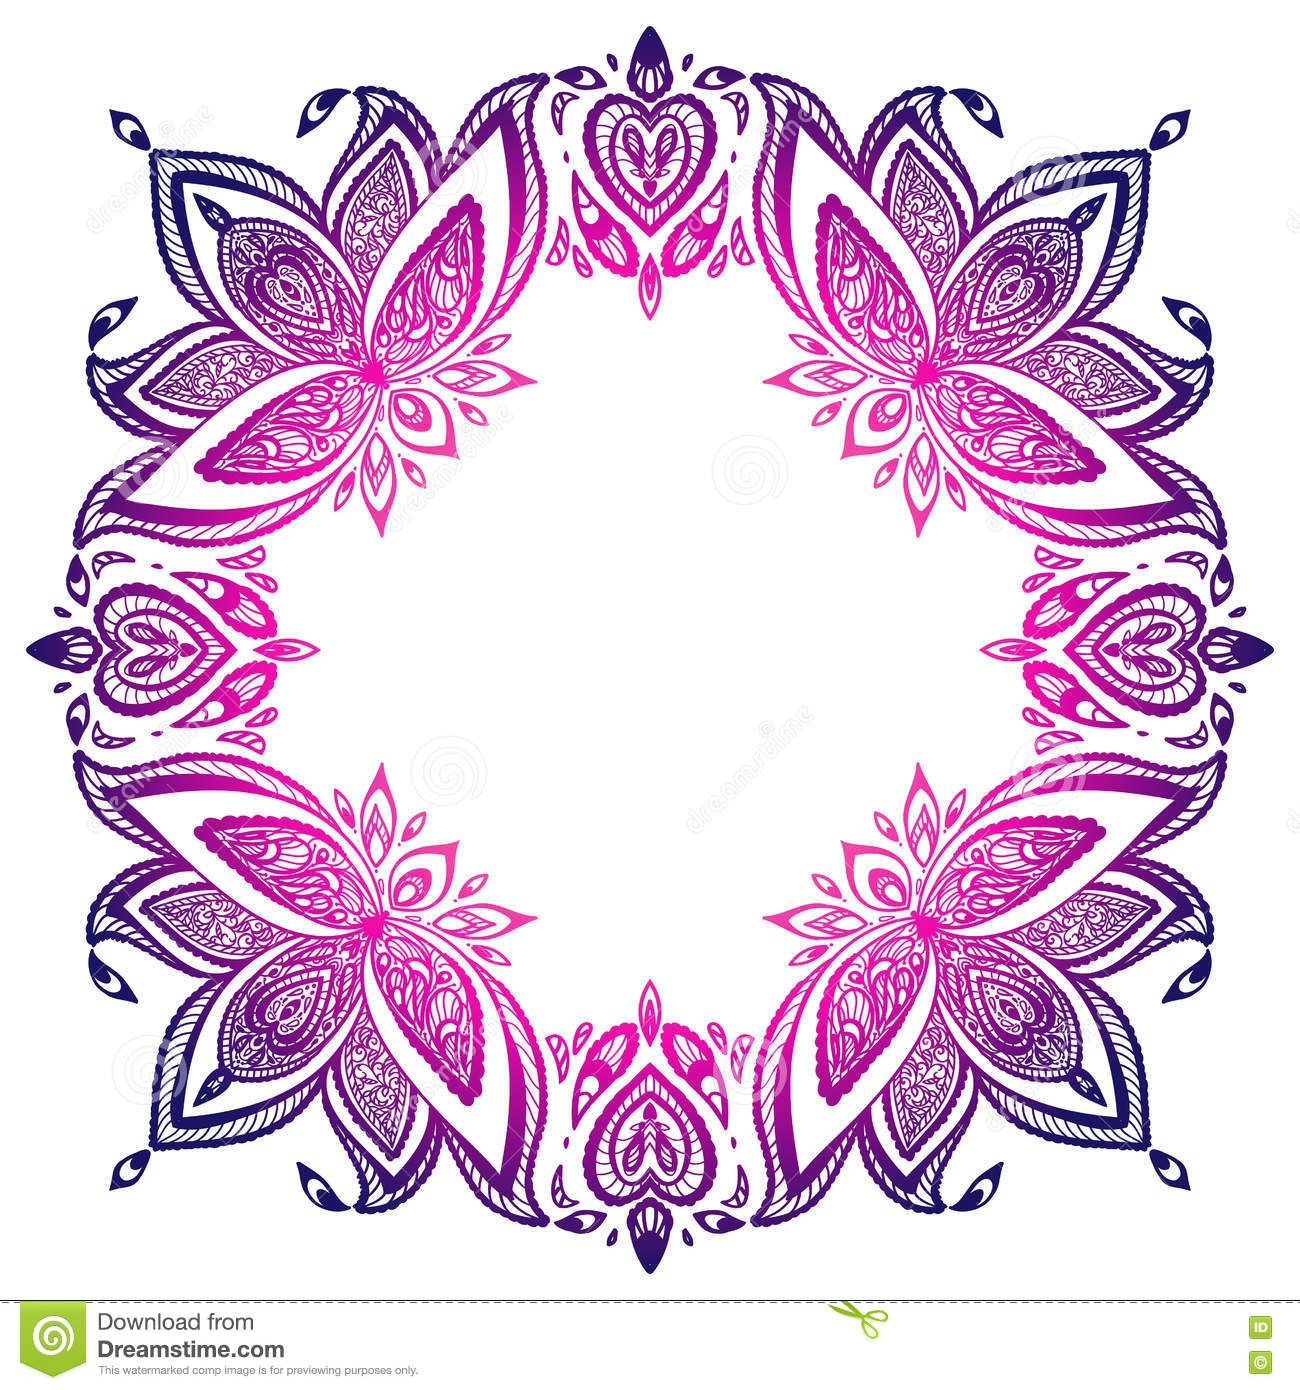 27 Paisley Coloring Pages Collections | FREE COLORING PAGES - Part 2